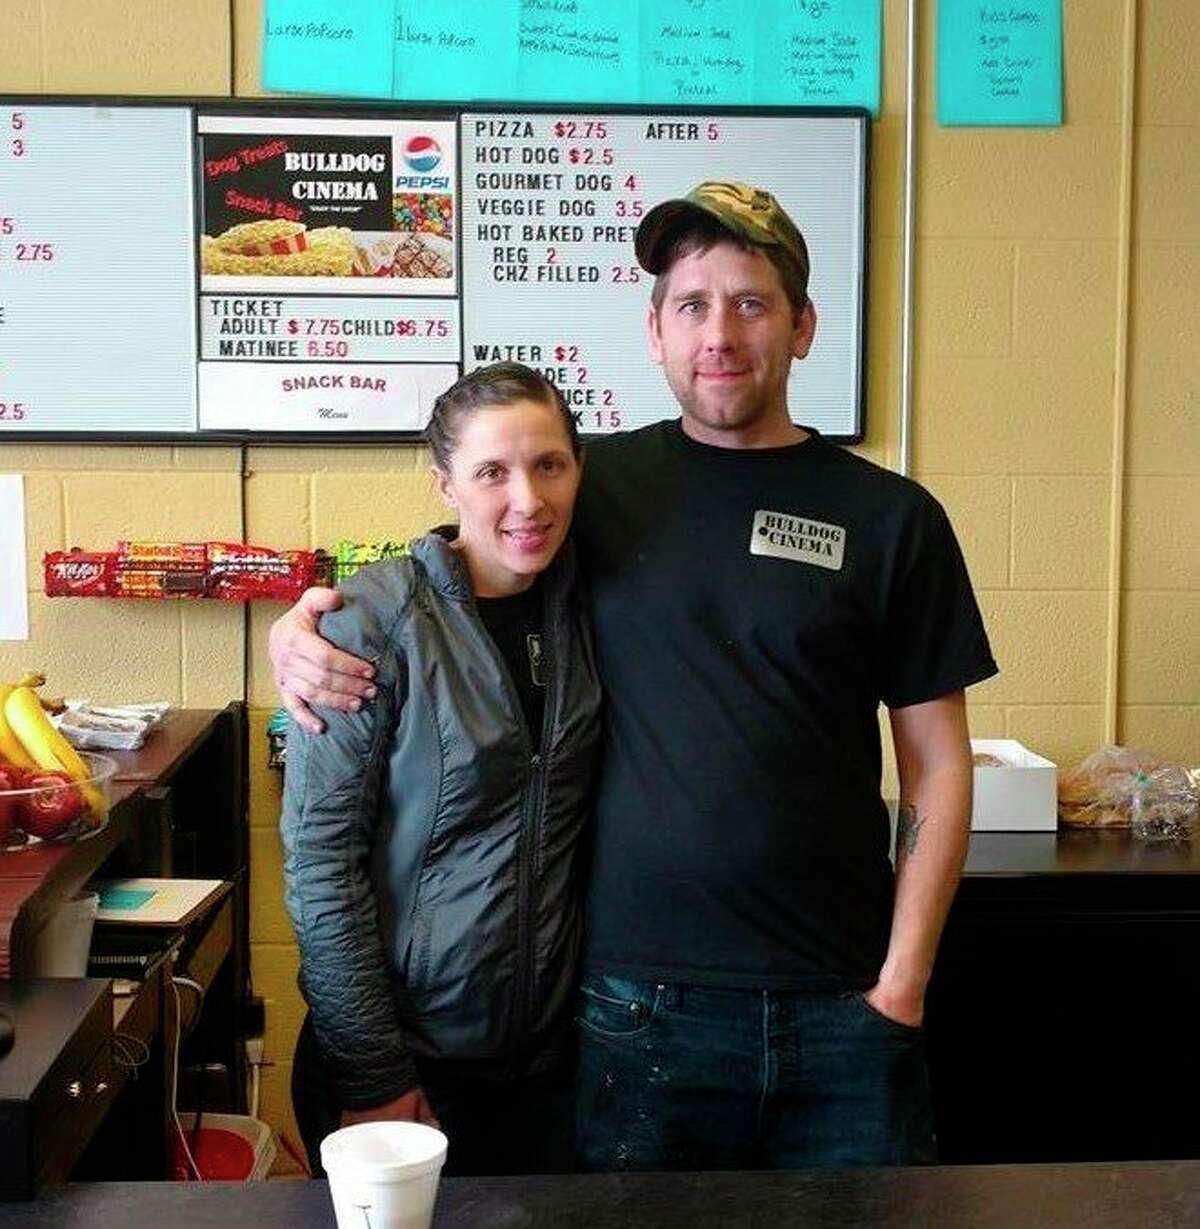 Bulldog Cinema co-owners Kylie Jo Szpiech and Jason Smith are excited to reopen the small movie theater to the public June 12. Smith said there will be a variety of extra safety precautions in place upon opening. (Courtesy photo)